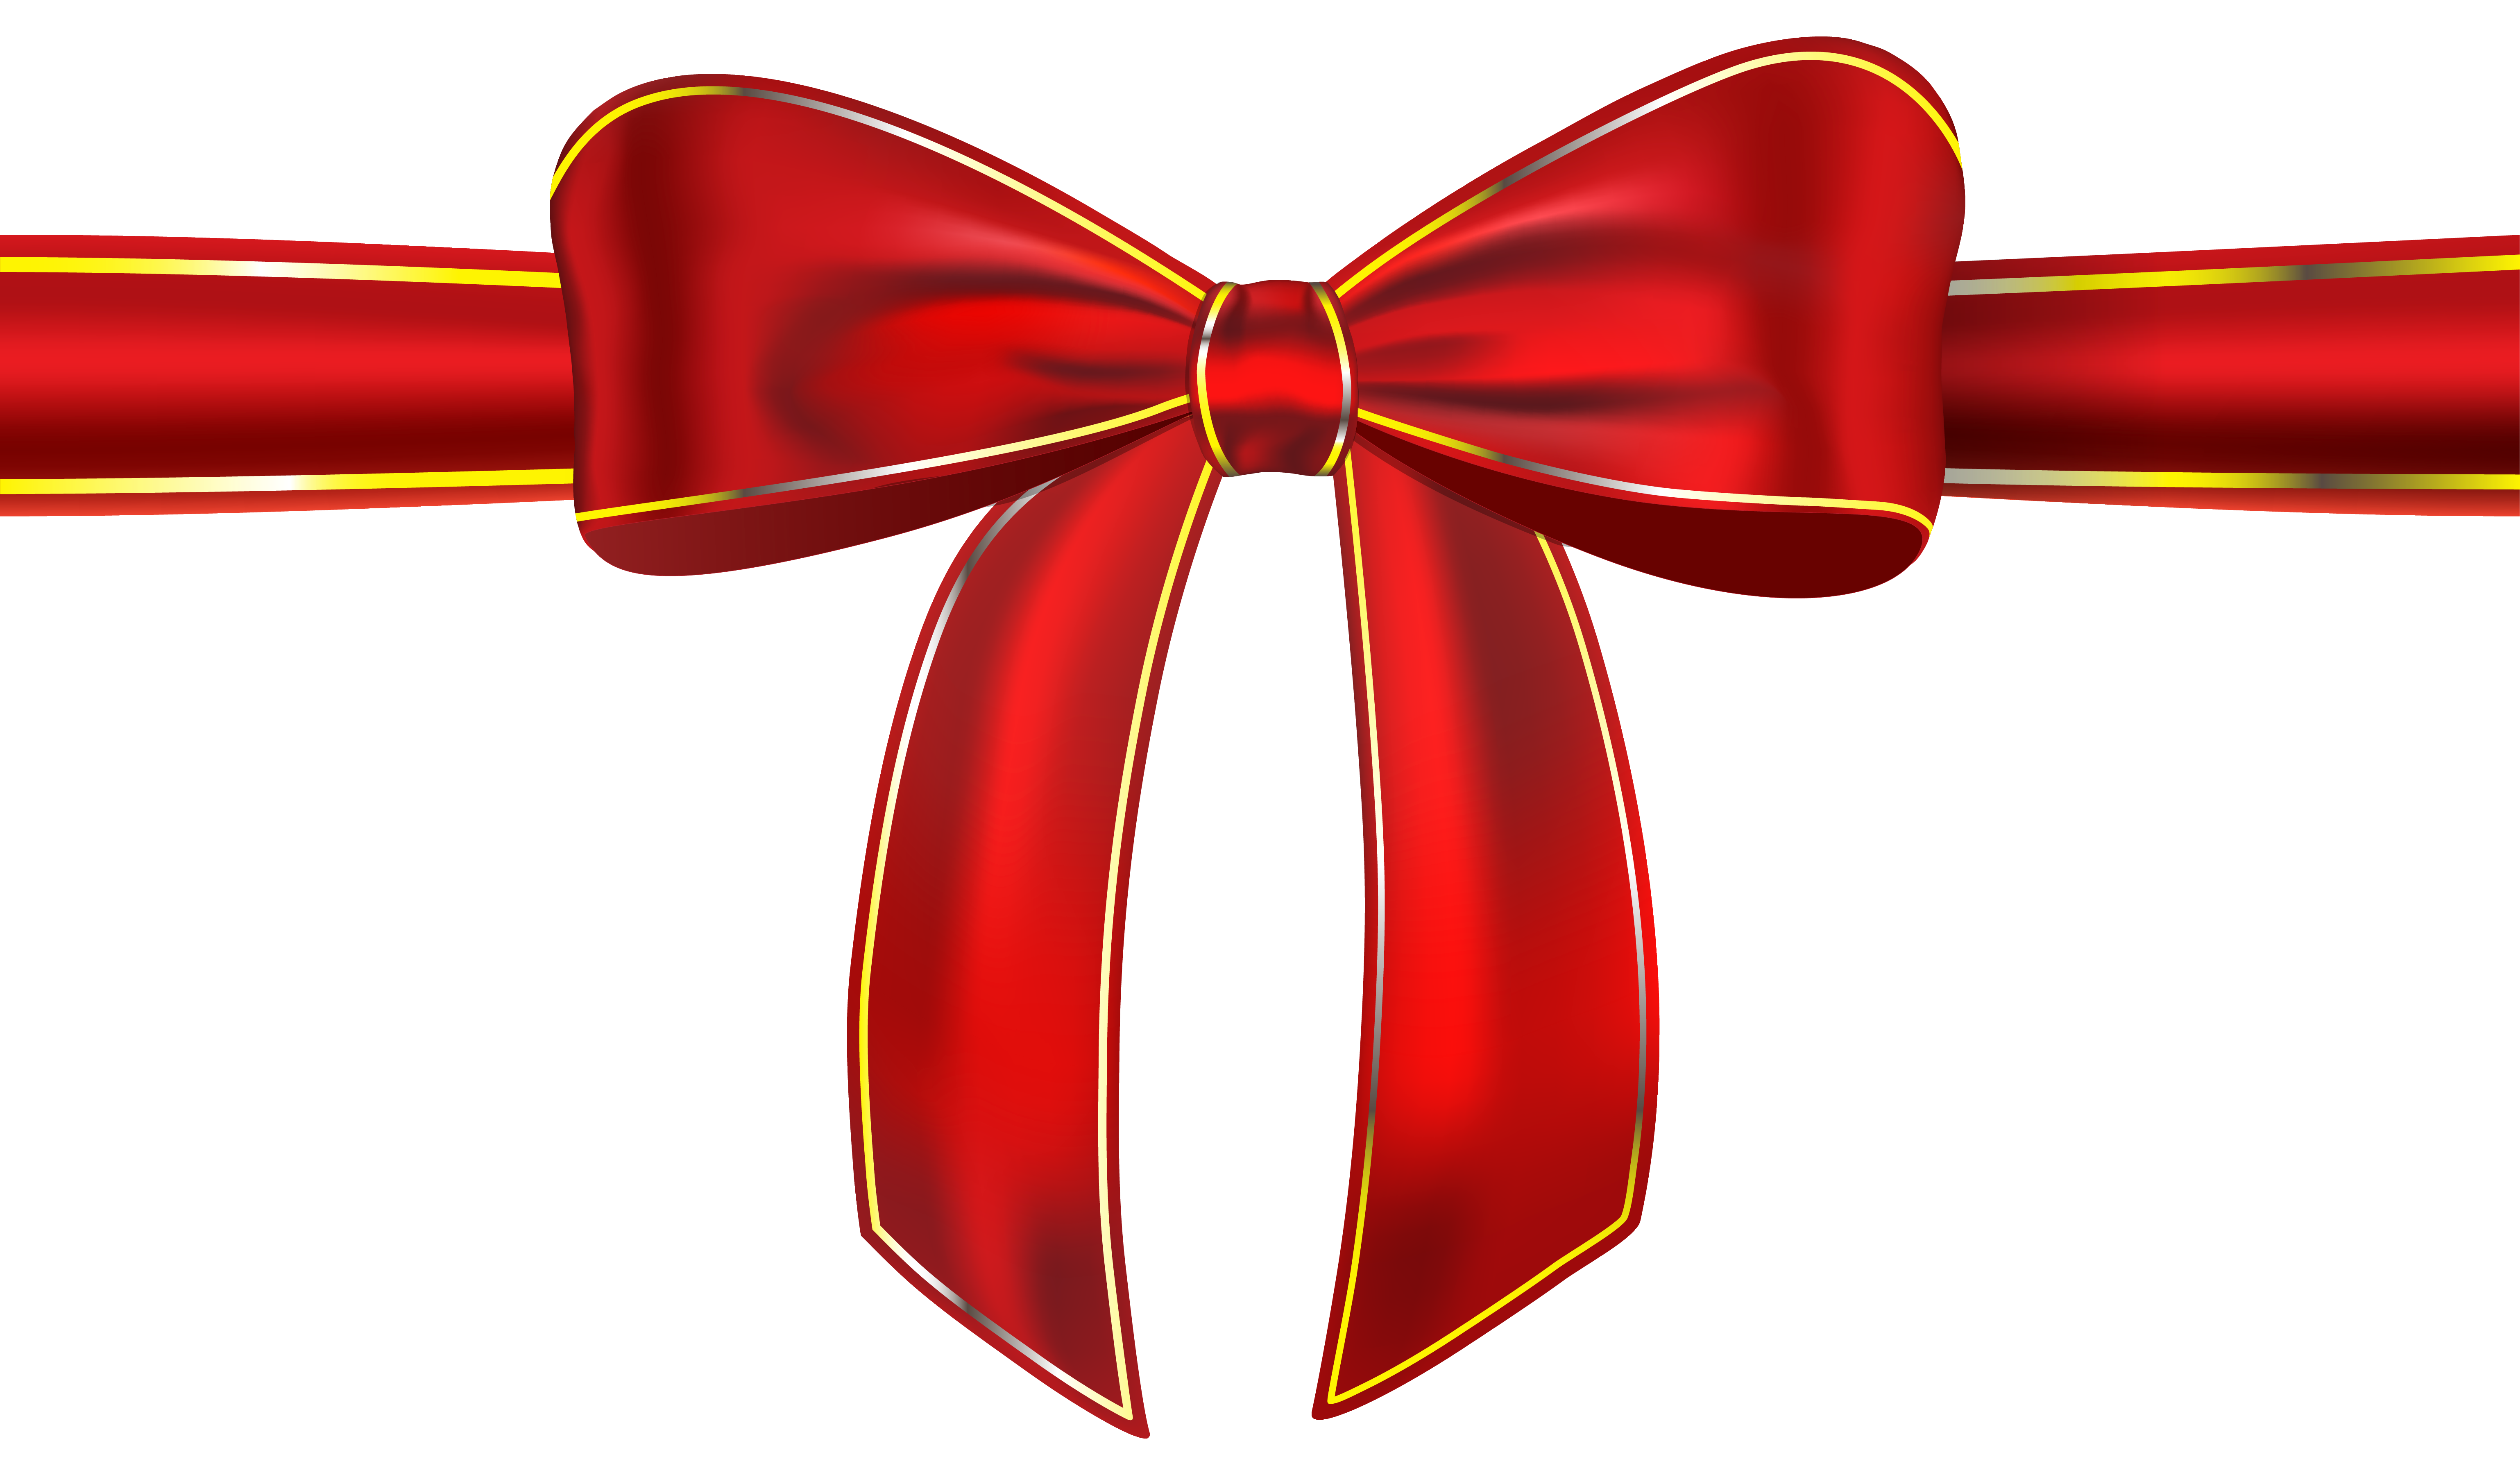 Red ribbon clipart 20 free Cliparts   Download images on ...